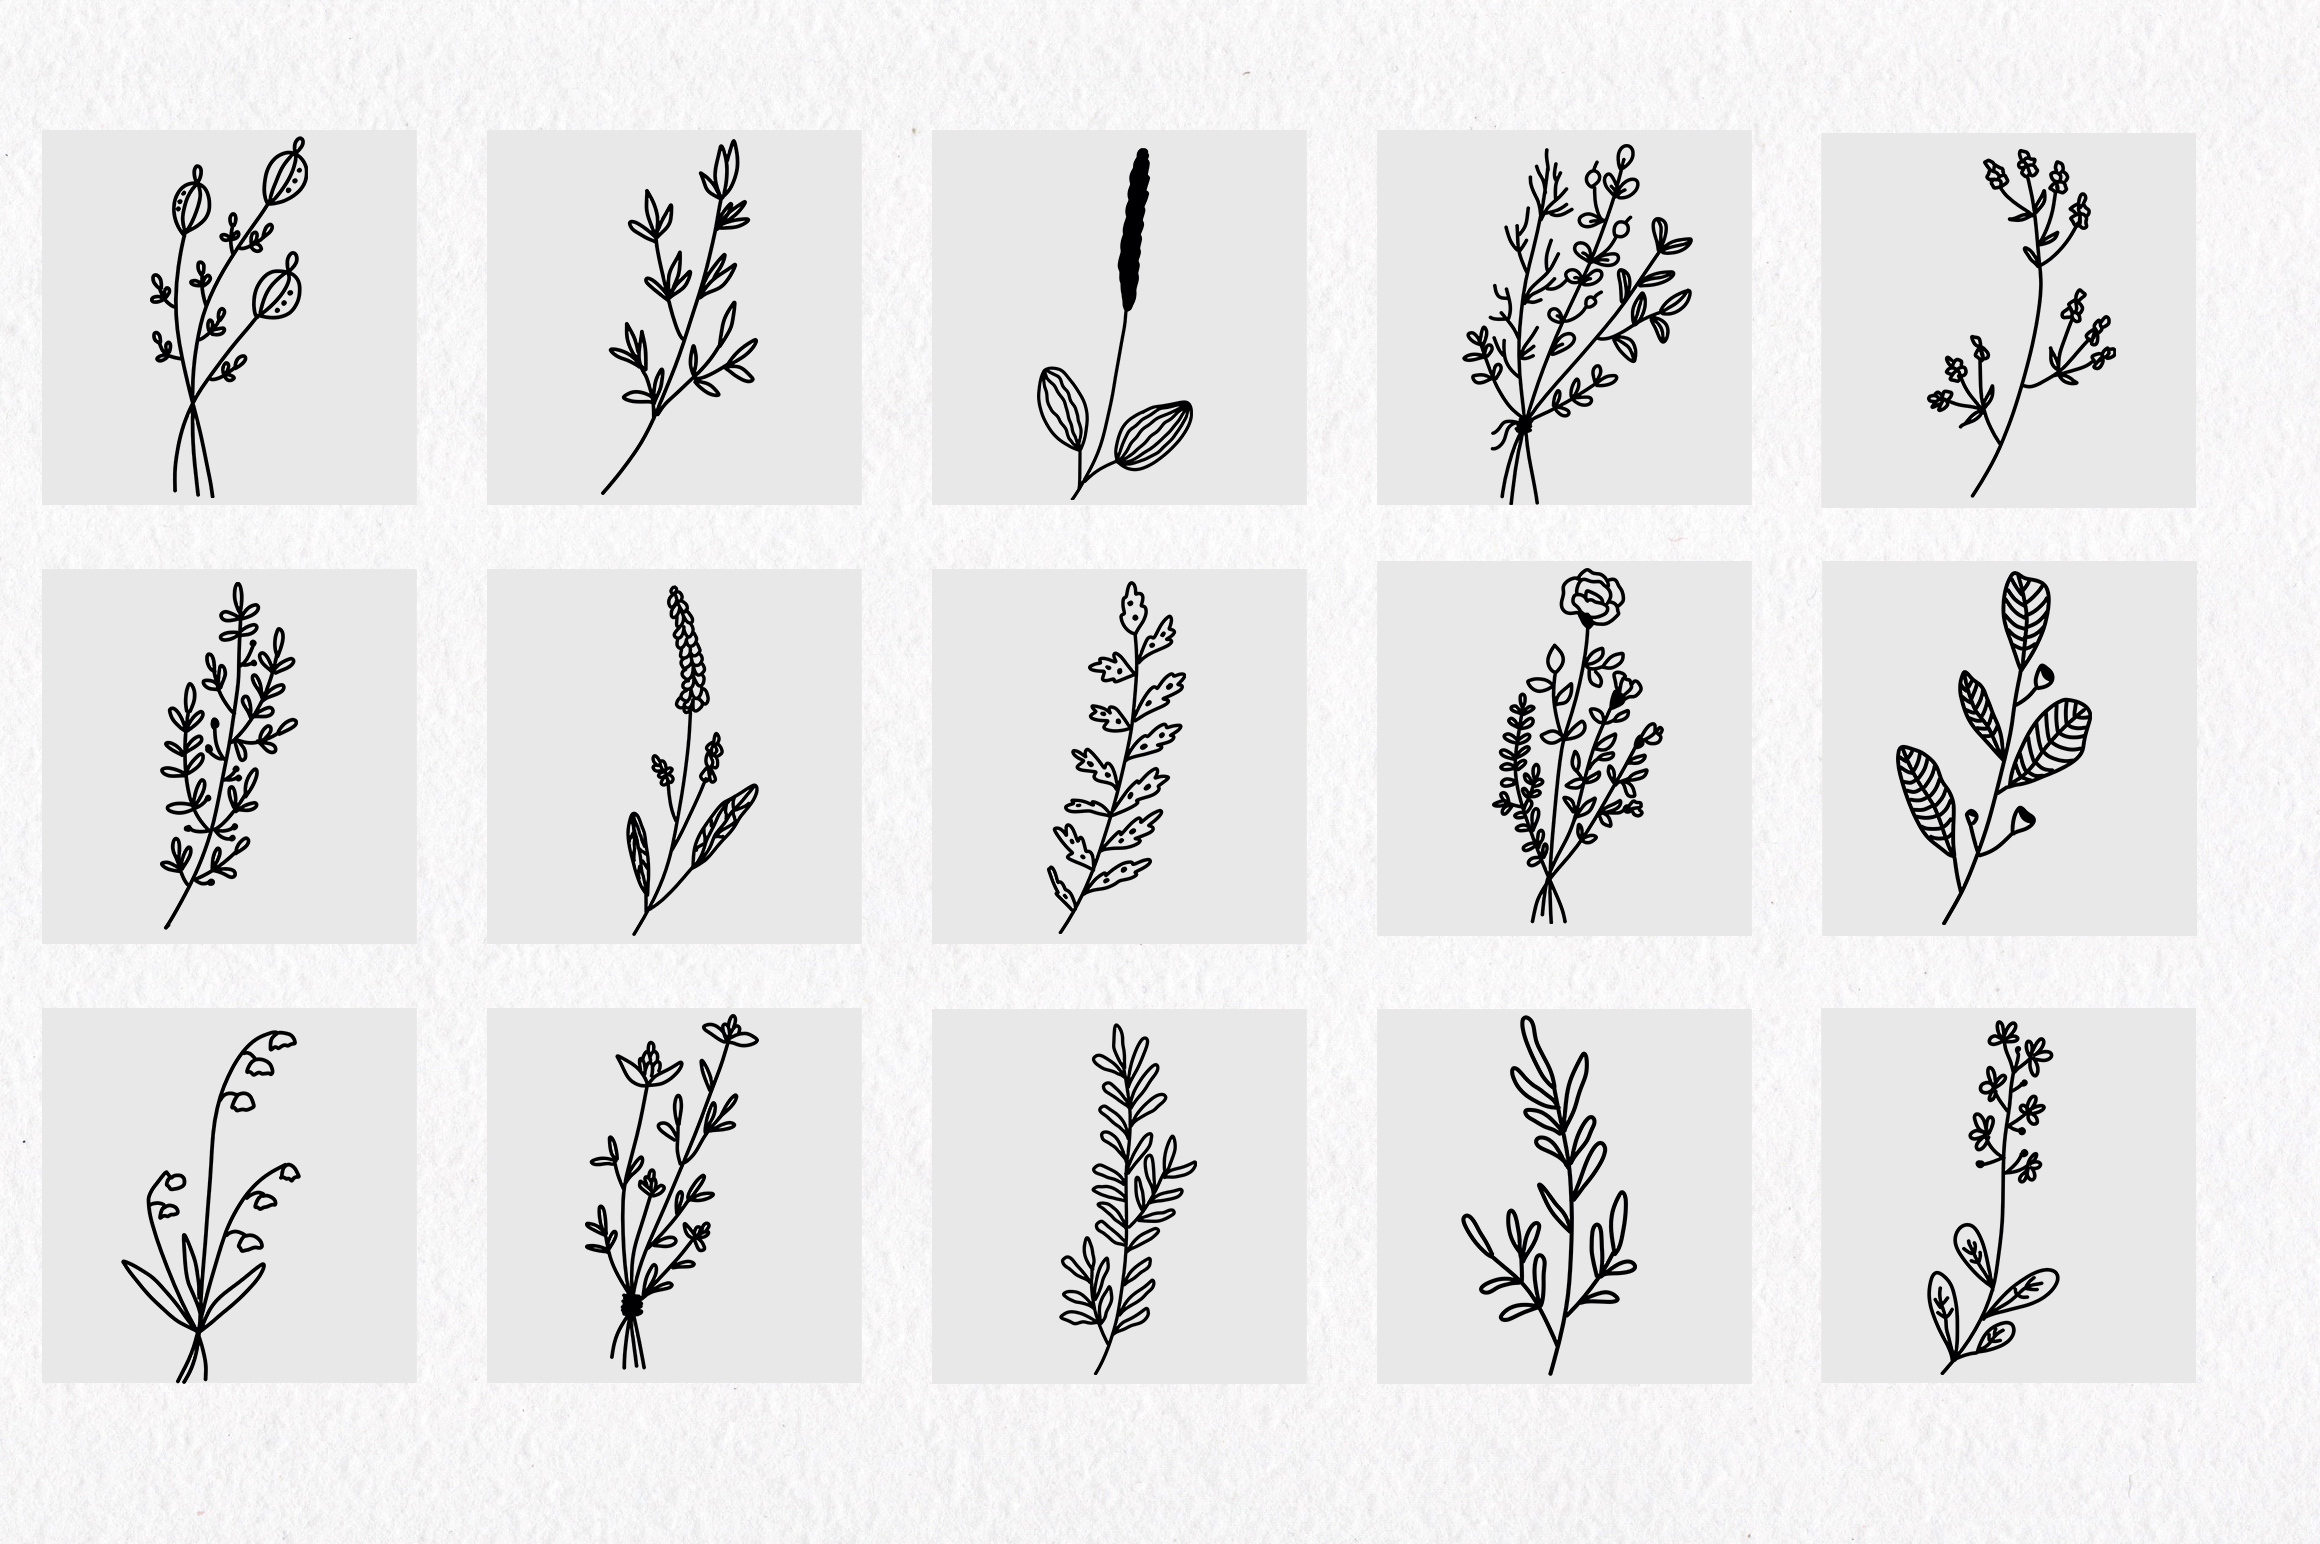 Floral and herbal elements. Hand drawn botanical art. example image 5